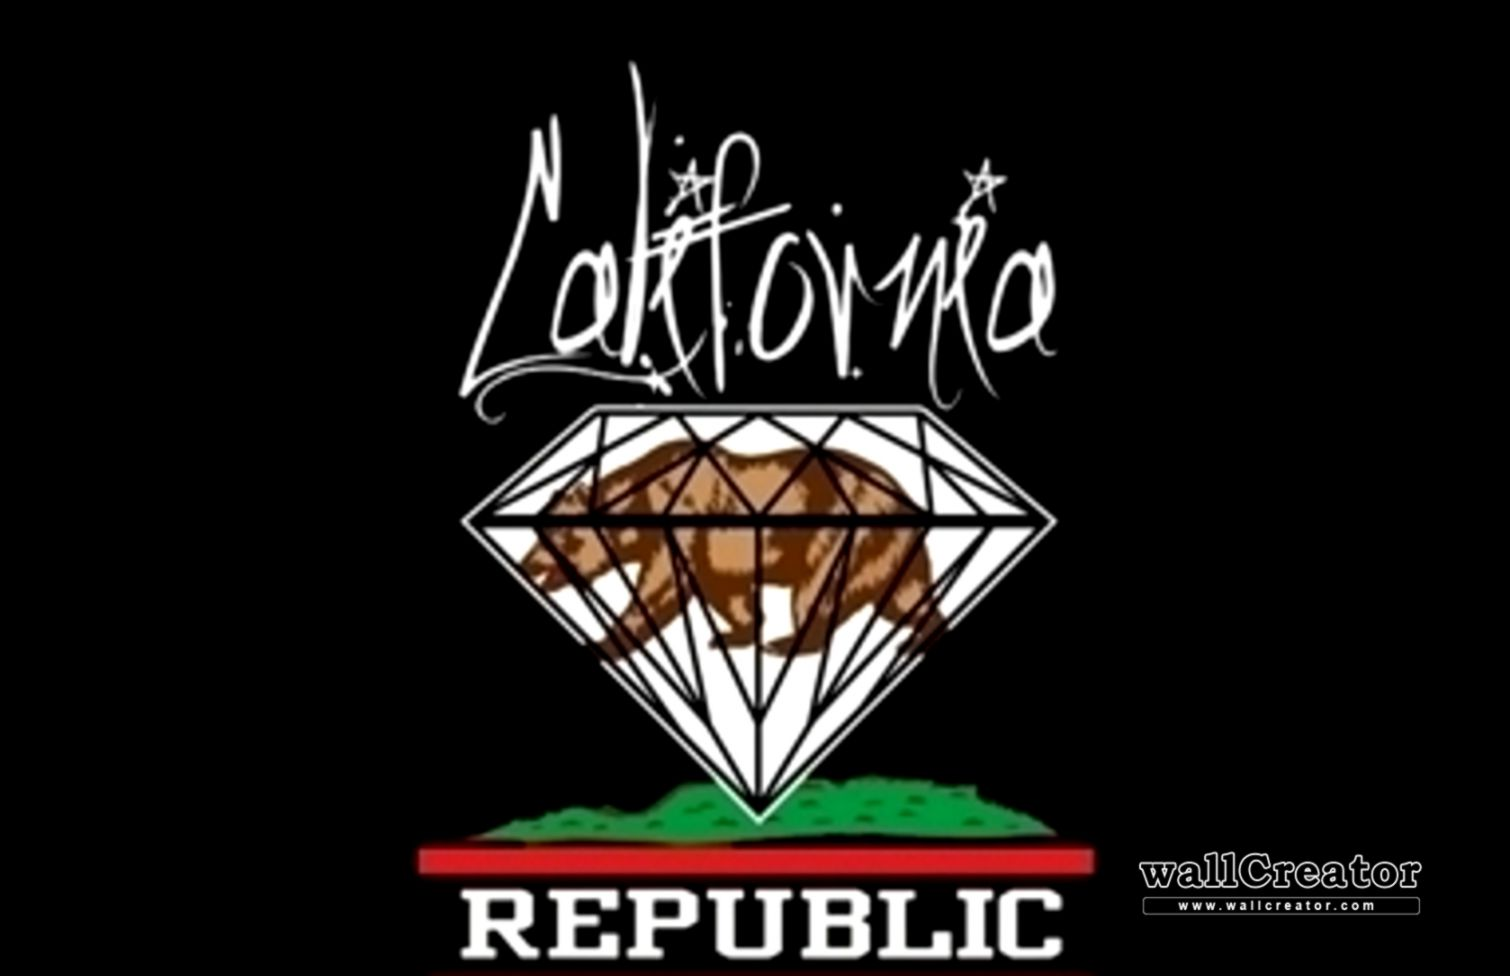 Diamond supply wallpaper this wallpapers diamond supply co wallpaper voltagebd Choice Image